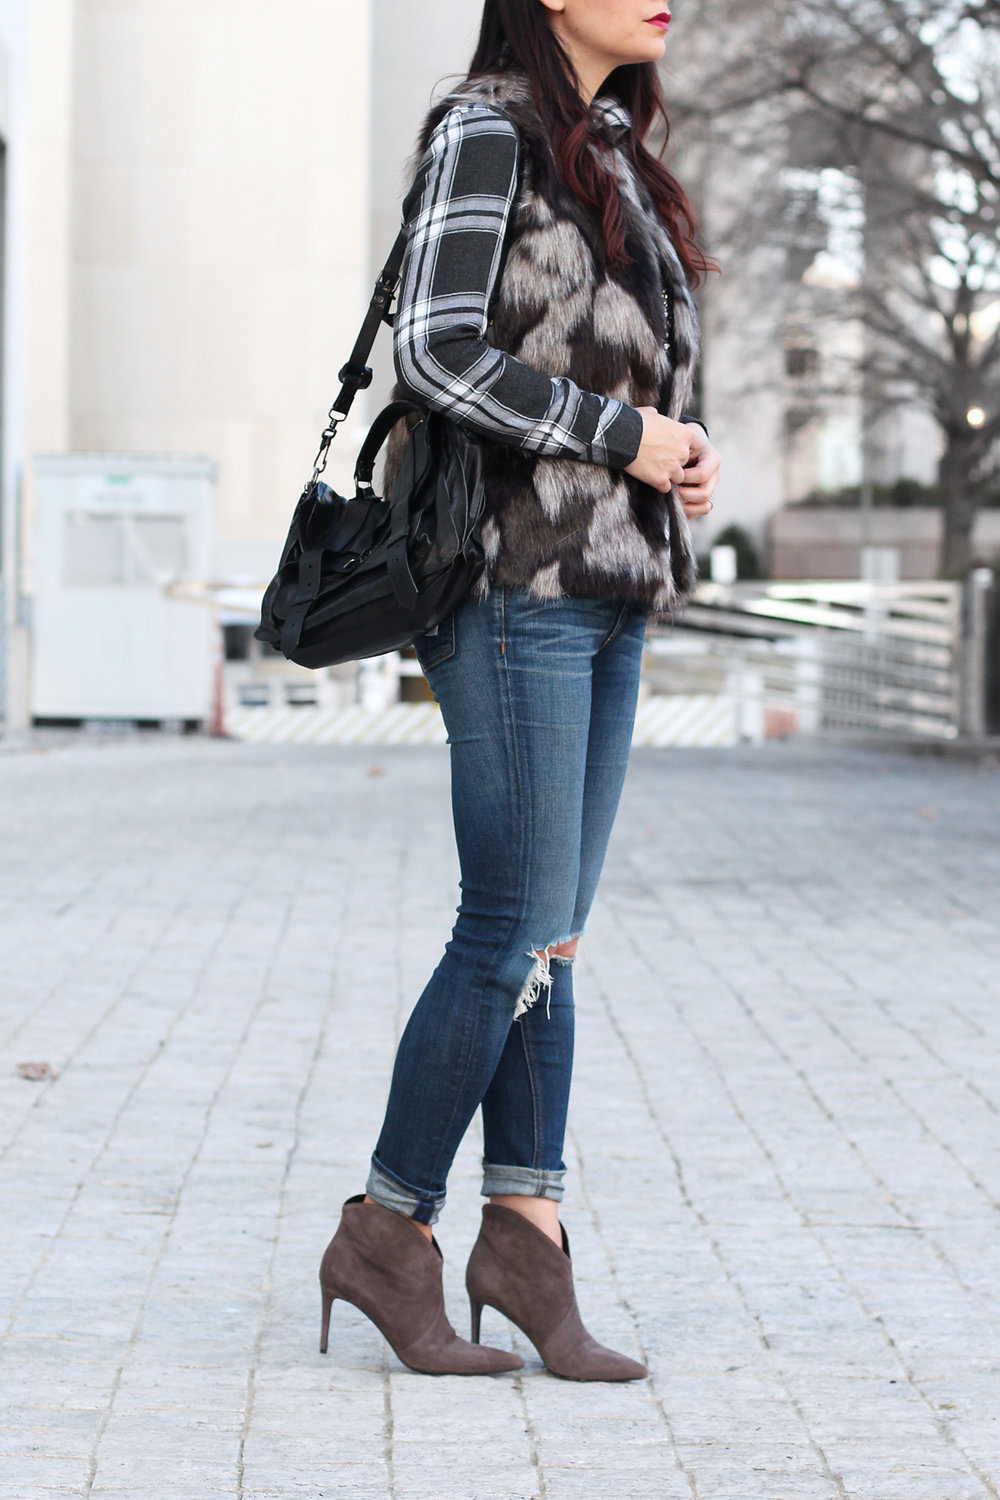 Fur Vest for Winter Outfit